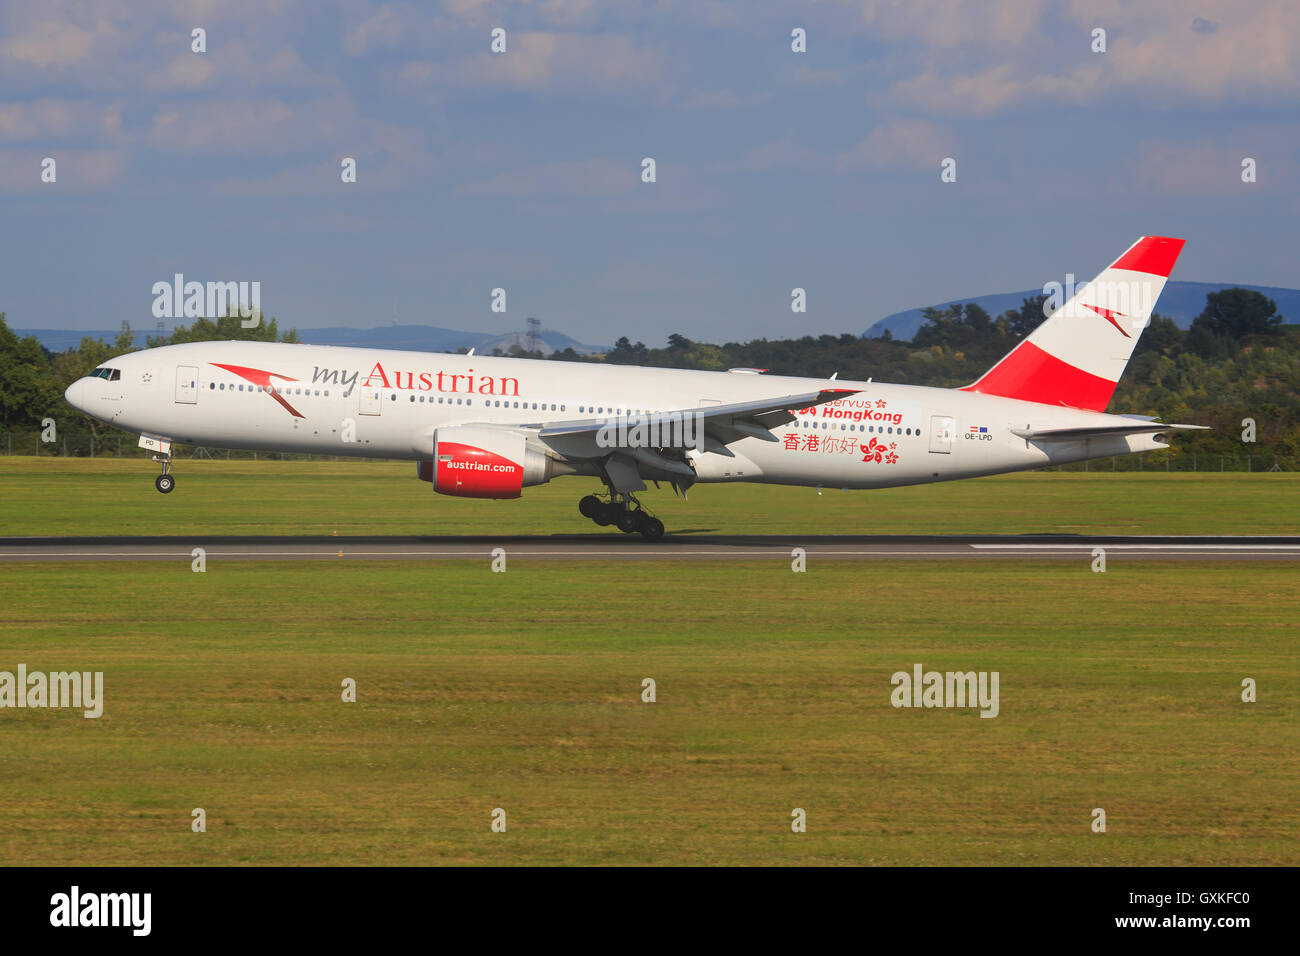 Wien/Austria August 9, 2016: Boeing 777 with 'HONGKONG' livery from Austrian landing at Wien Airport. - Stock Image